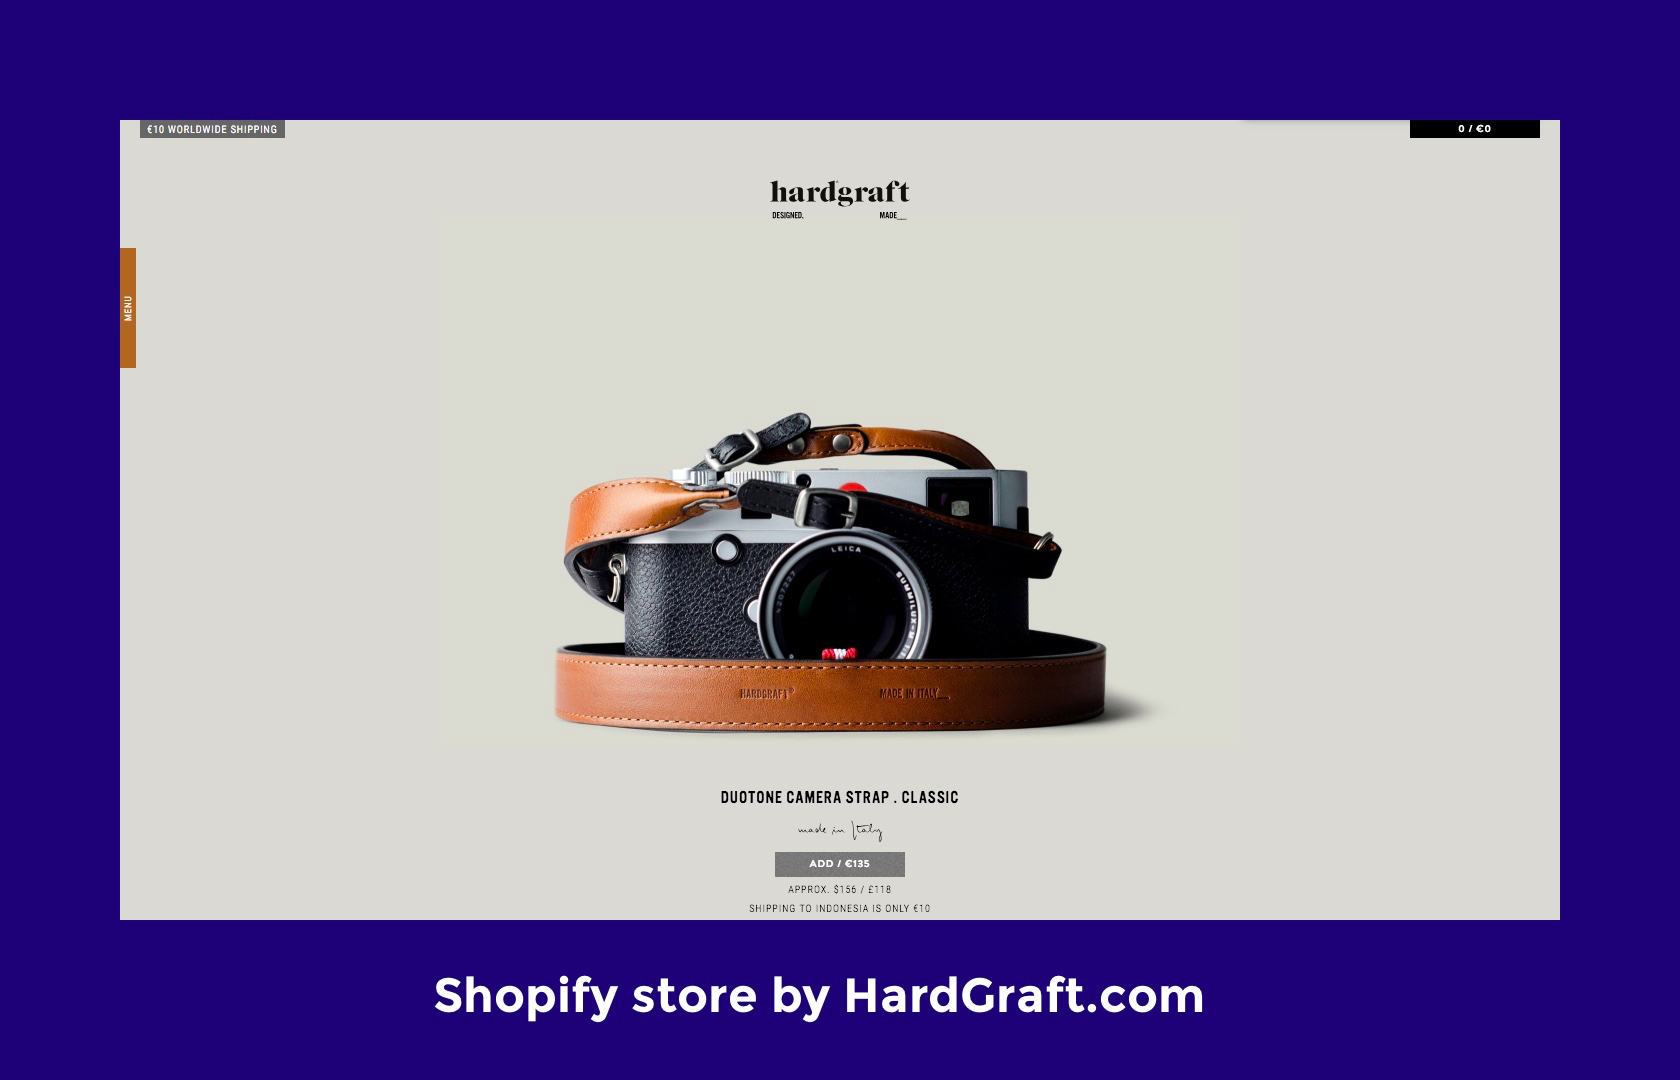 Shopify design tip: Shopify stores with terrific imagery convert better